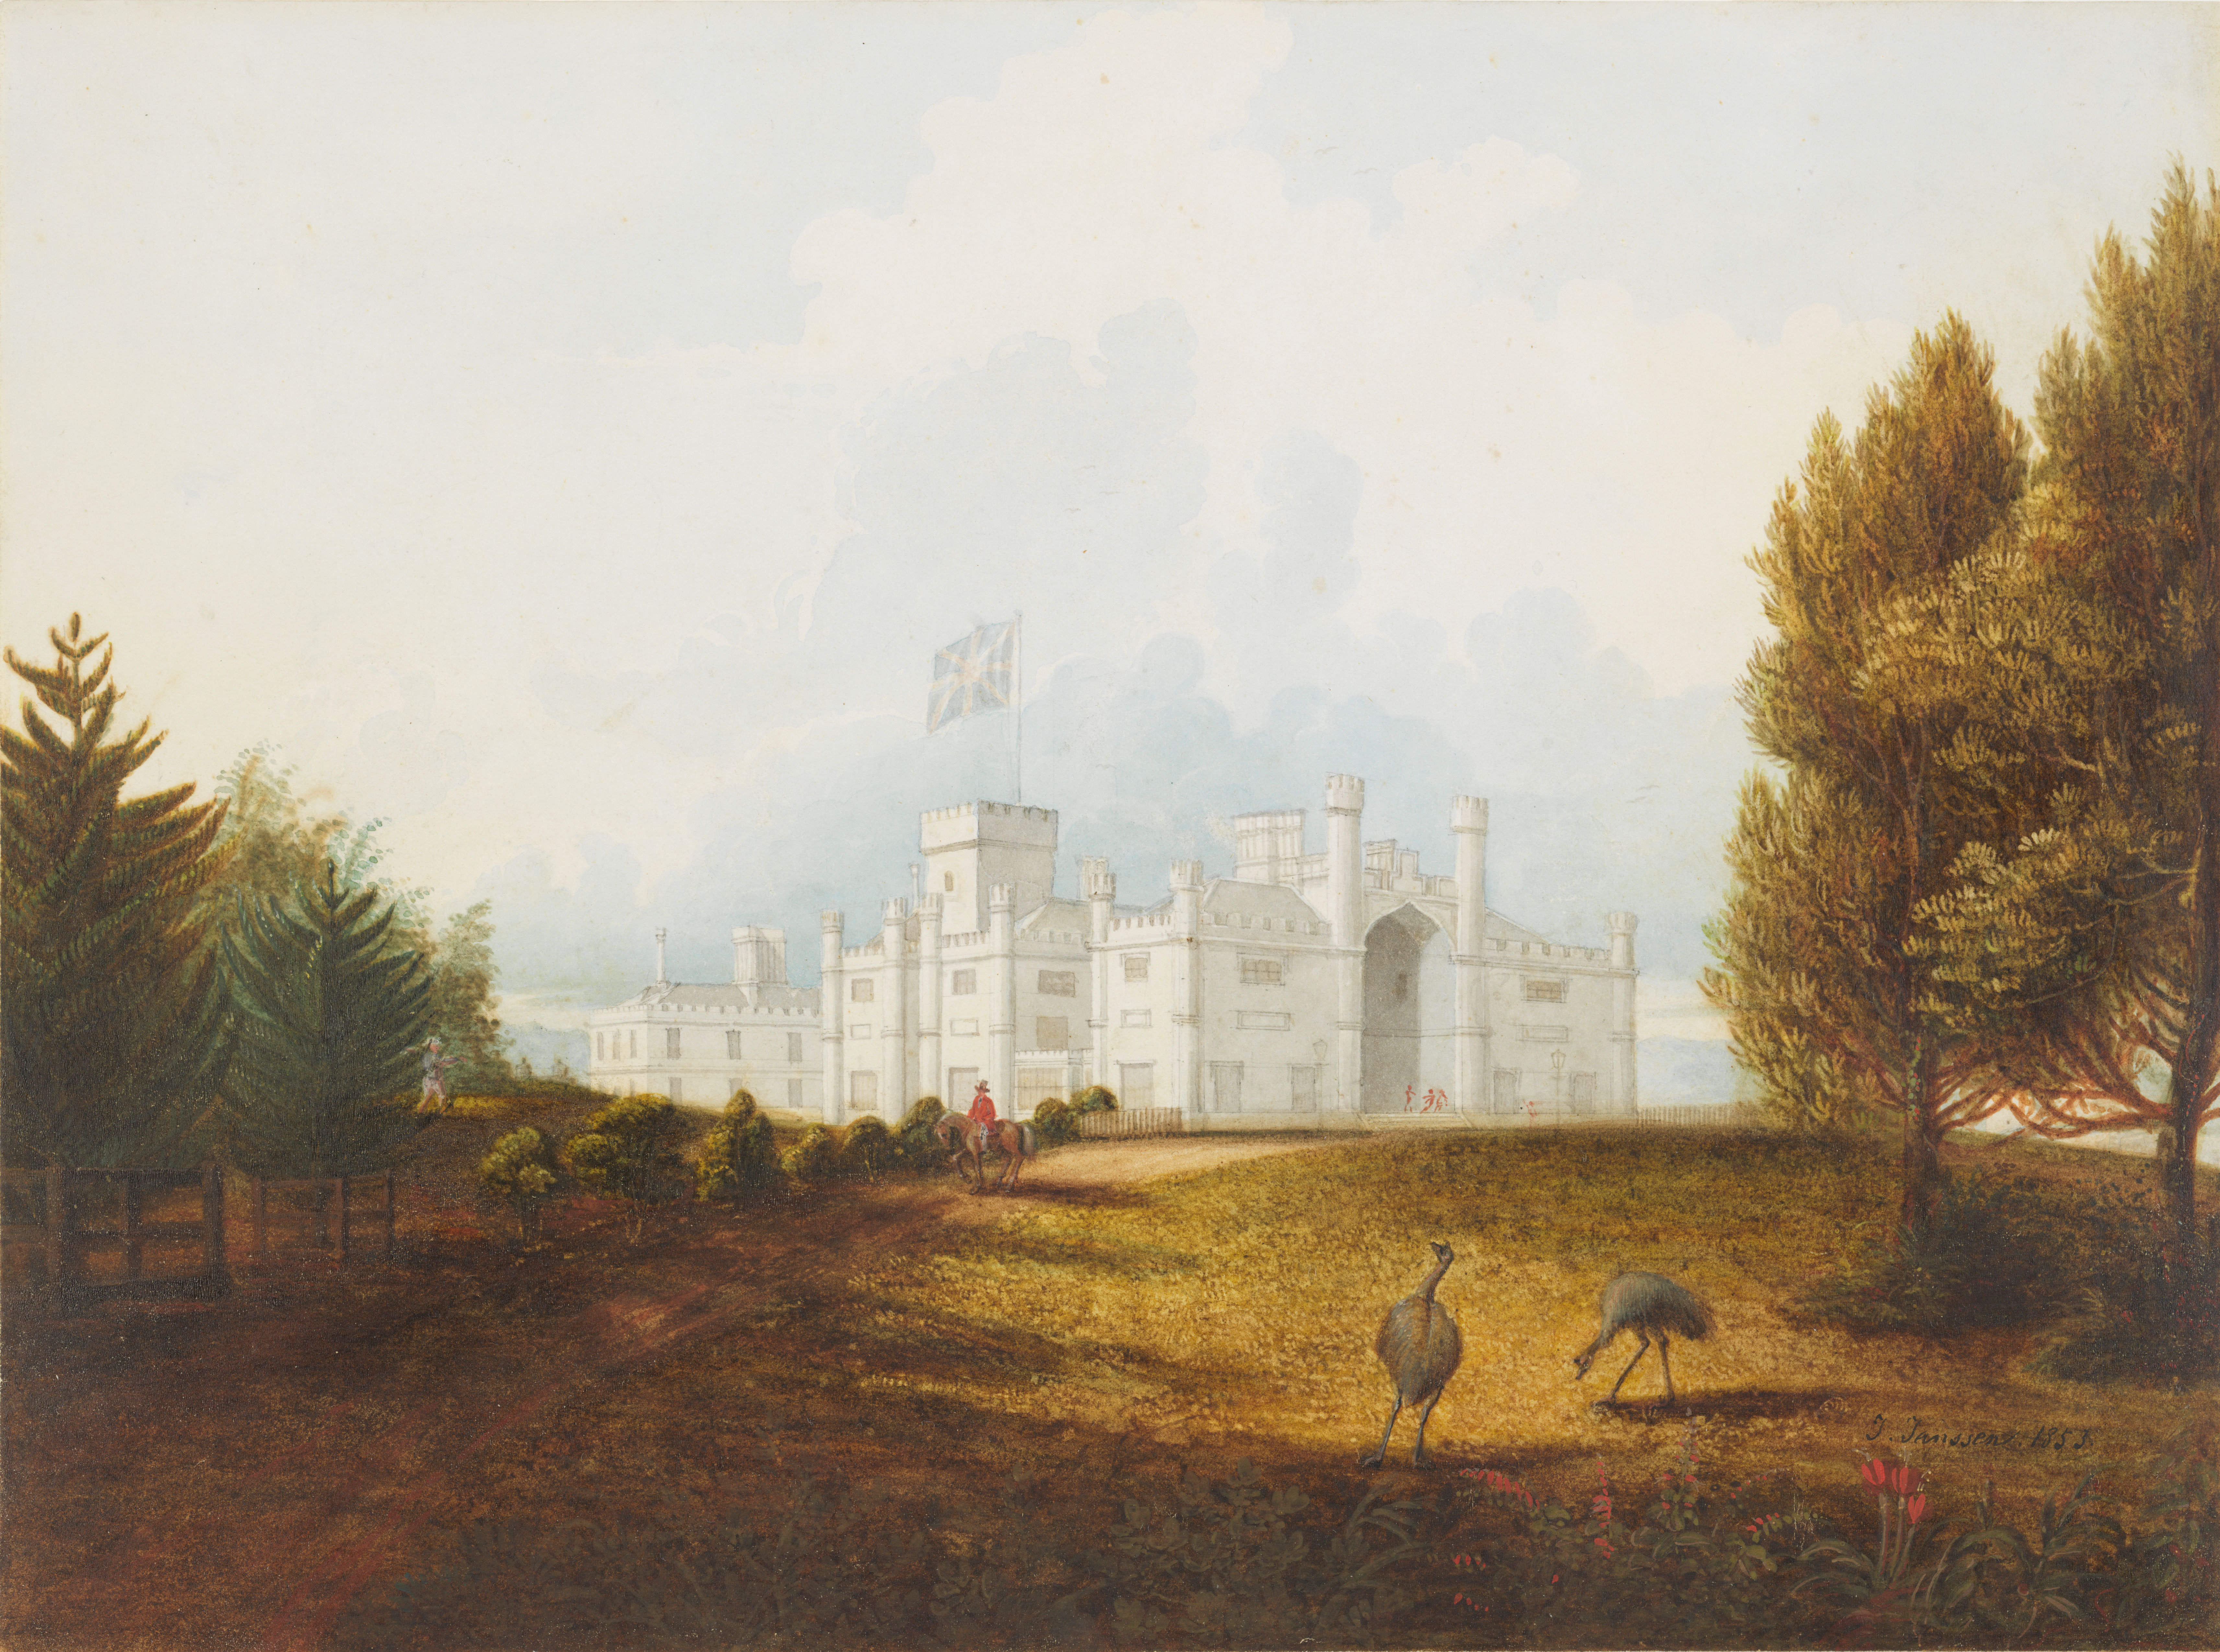 A painting of a view of Government House, with emus in the garden in the foreground and a horseman on the garden track.